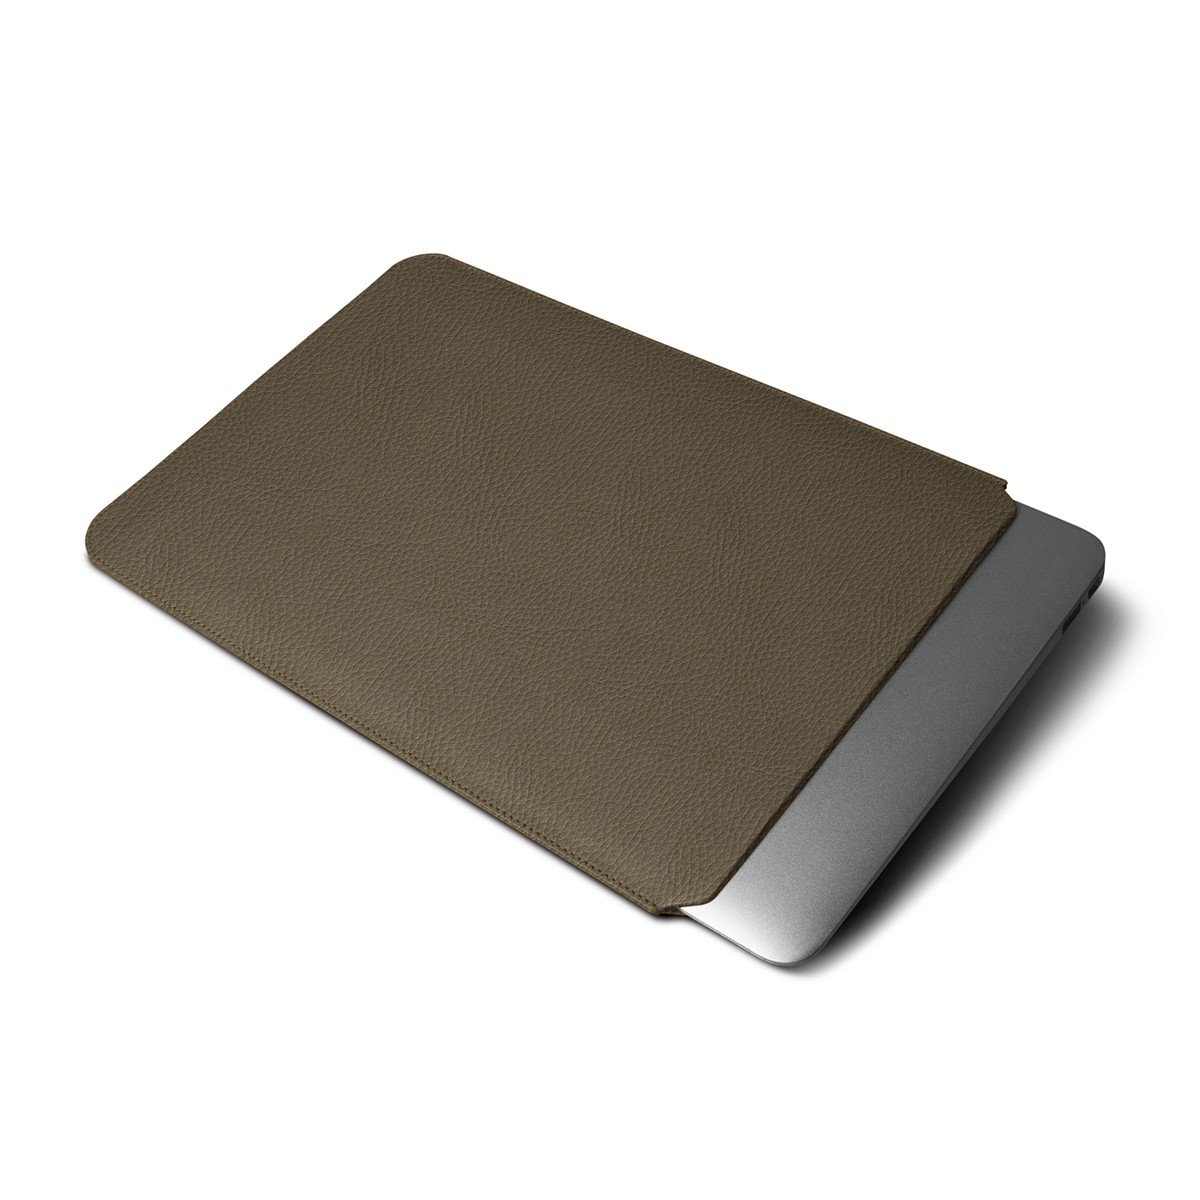 Lucrin - MacBook Air 13-inch case - Dark Taupe - Granulated Leather